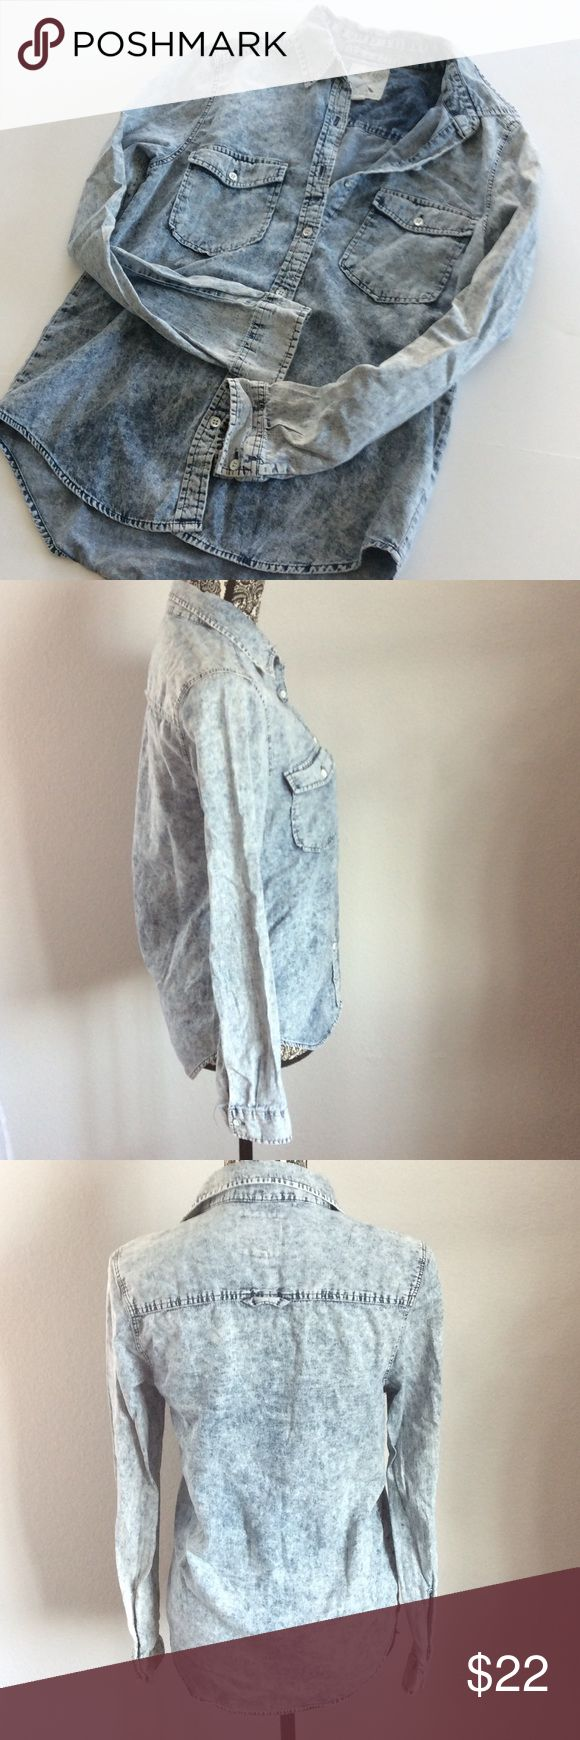 LA Hearts acid wash denim long button down In excellent pre loved condition. No rips or stains. Long sleeve top. No buttons missing. Size small. 100% cotton. LA Hearts Tops Button Down Shirts